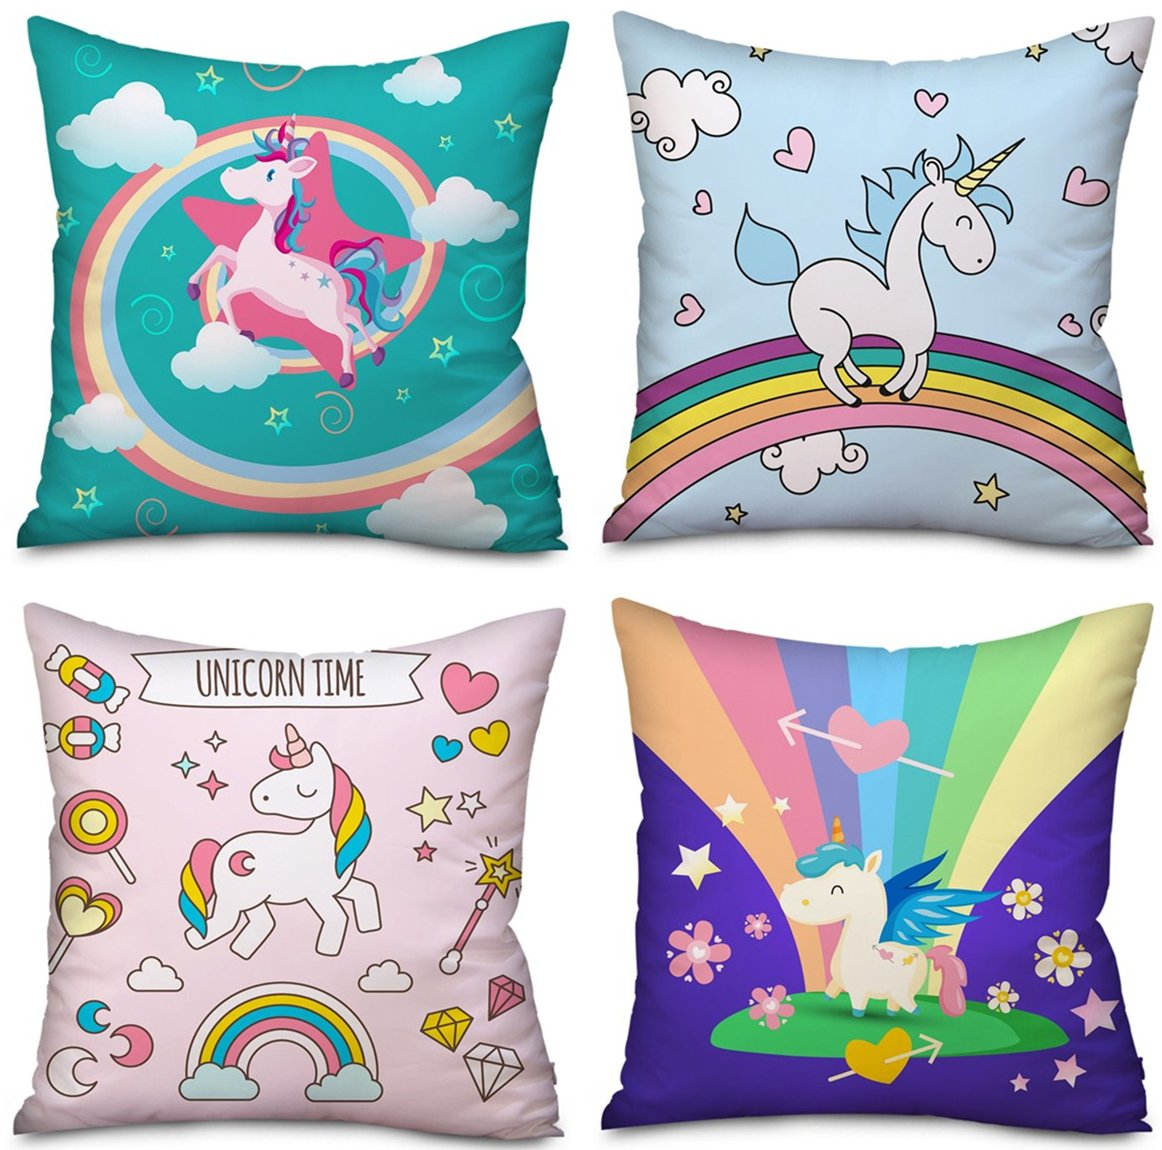 4 Pack Unicorn Pillow case Cushion Covers Home Decor, Unicorn gifts Christmas Thanksgiving Halloween 18 x 18 Inches Two Sides Cute Pillow Cover Case Sofa Decorative (4 Pack Unicorn-A) by Feidiao (Image #1)